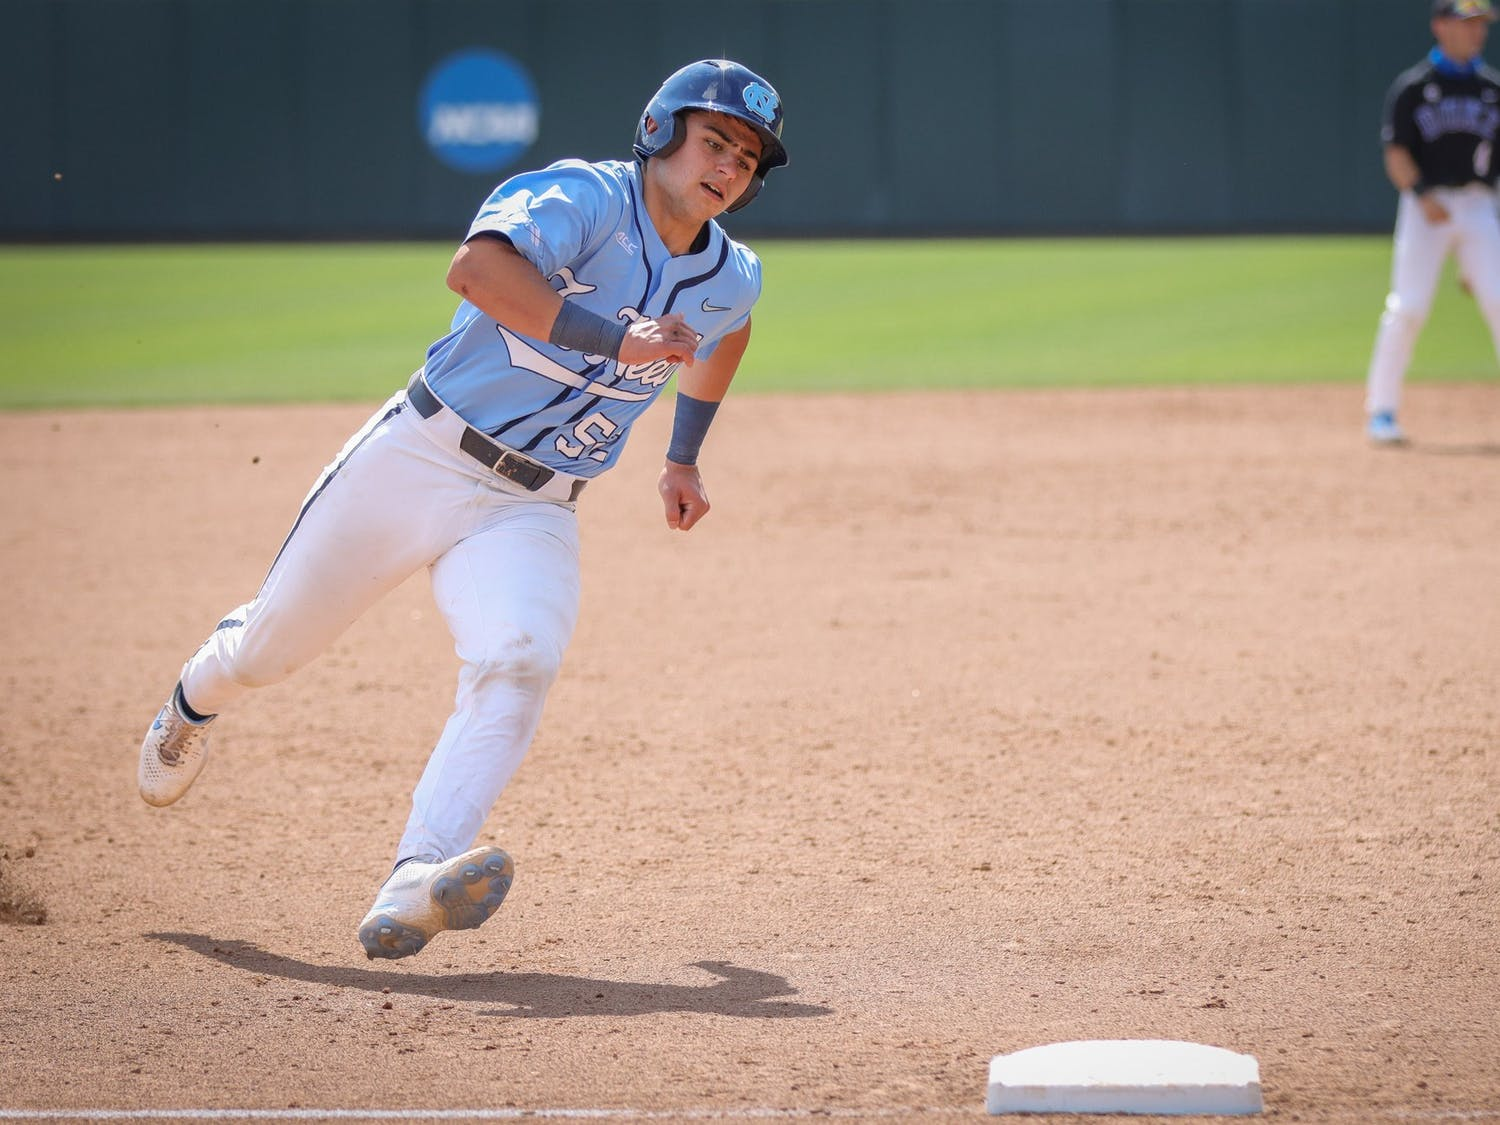 UNC freshman catcher Tomas Frick (52) rounds third base during the Tar Heels' 11-5 win against Duke on Sunday, April 11, 2021 in Boshamer Stadium.